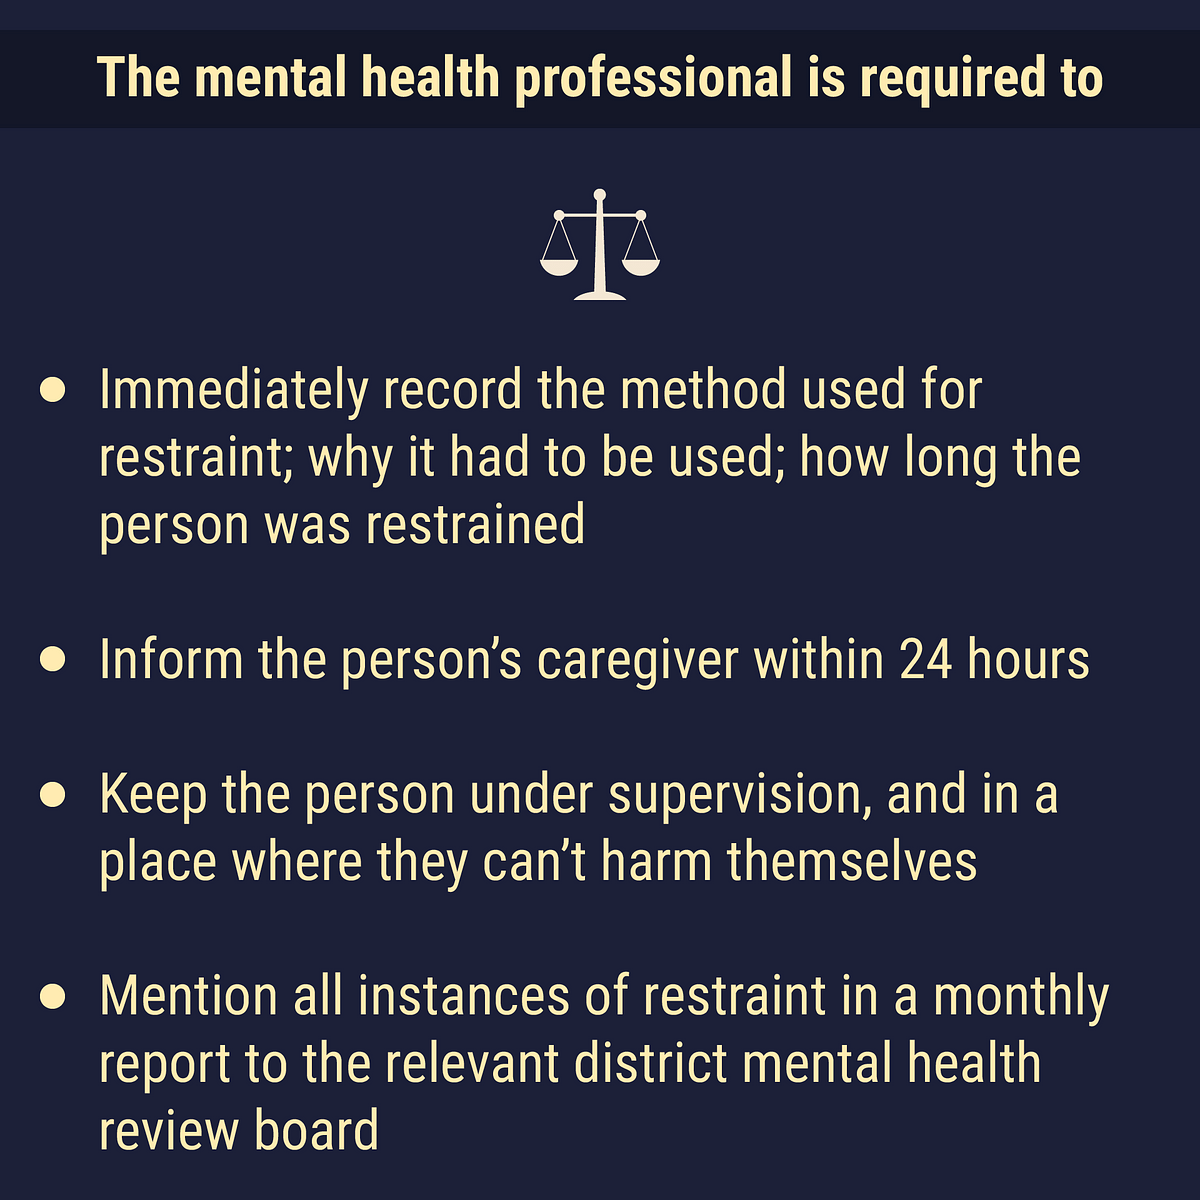 What is a mental health professional required to do?